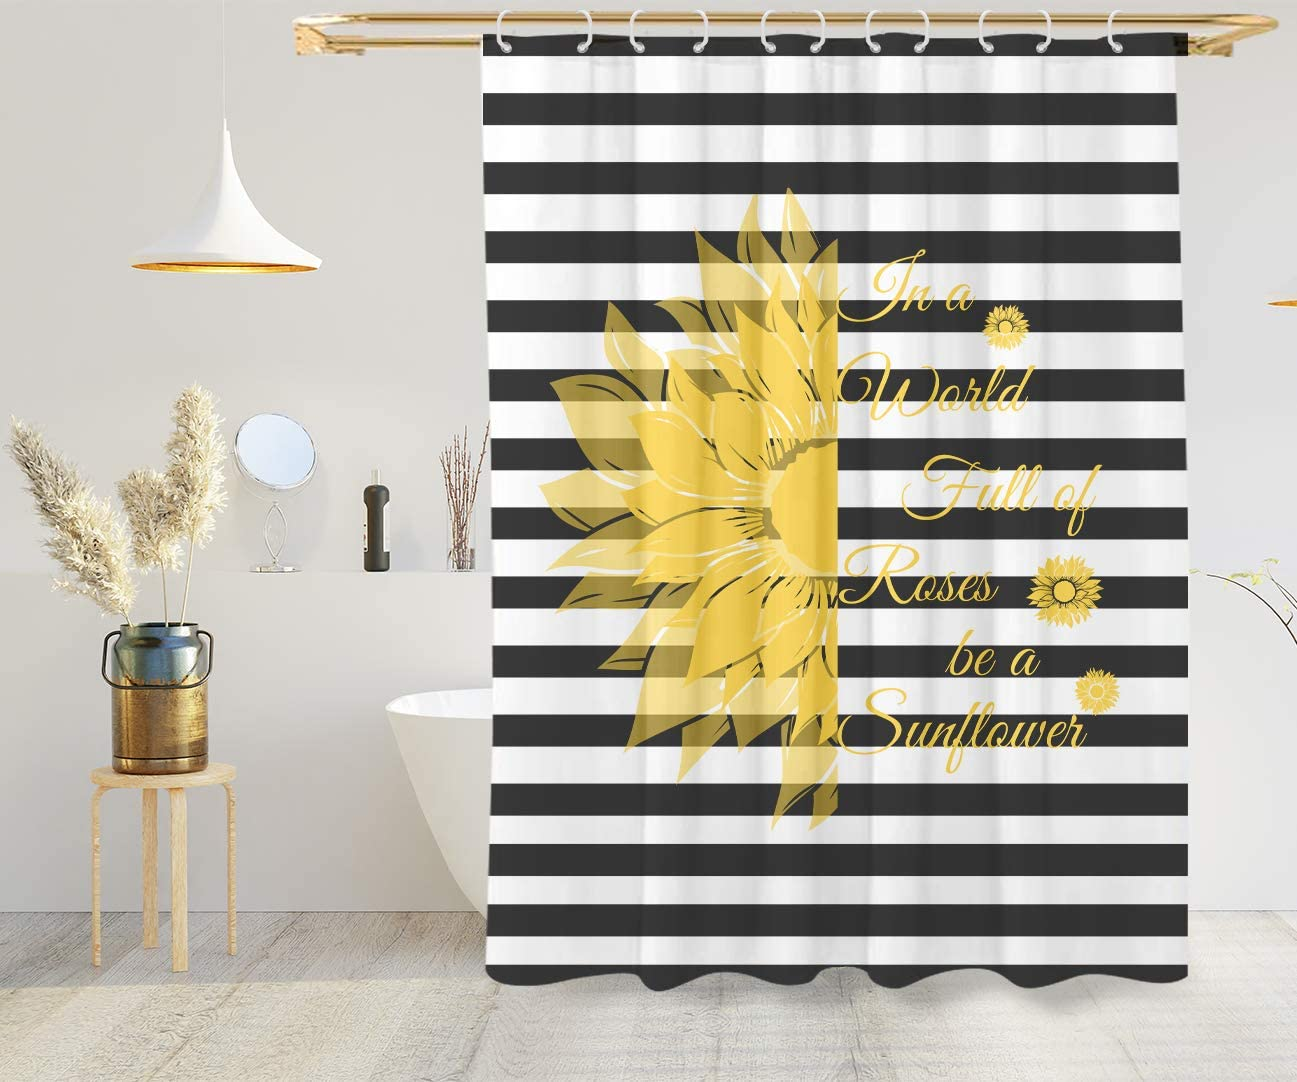 VEGA U Sunflower Quote Fabric Shower Curtain for Bathroom, Black and White Stripe Bath Decor with Hooks, Hotel Quality, 72x72 Inch, Yellow (Yellow)